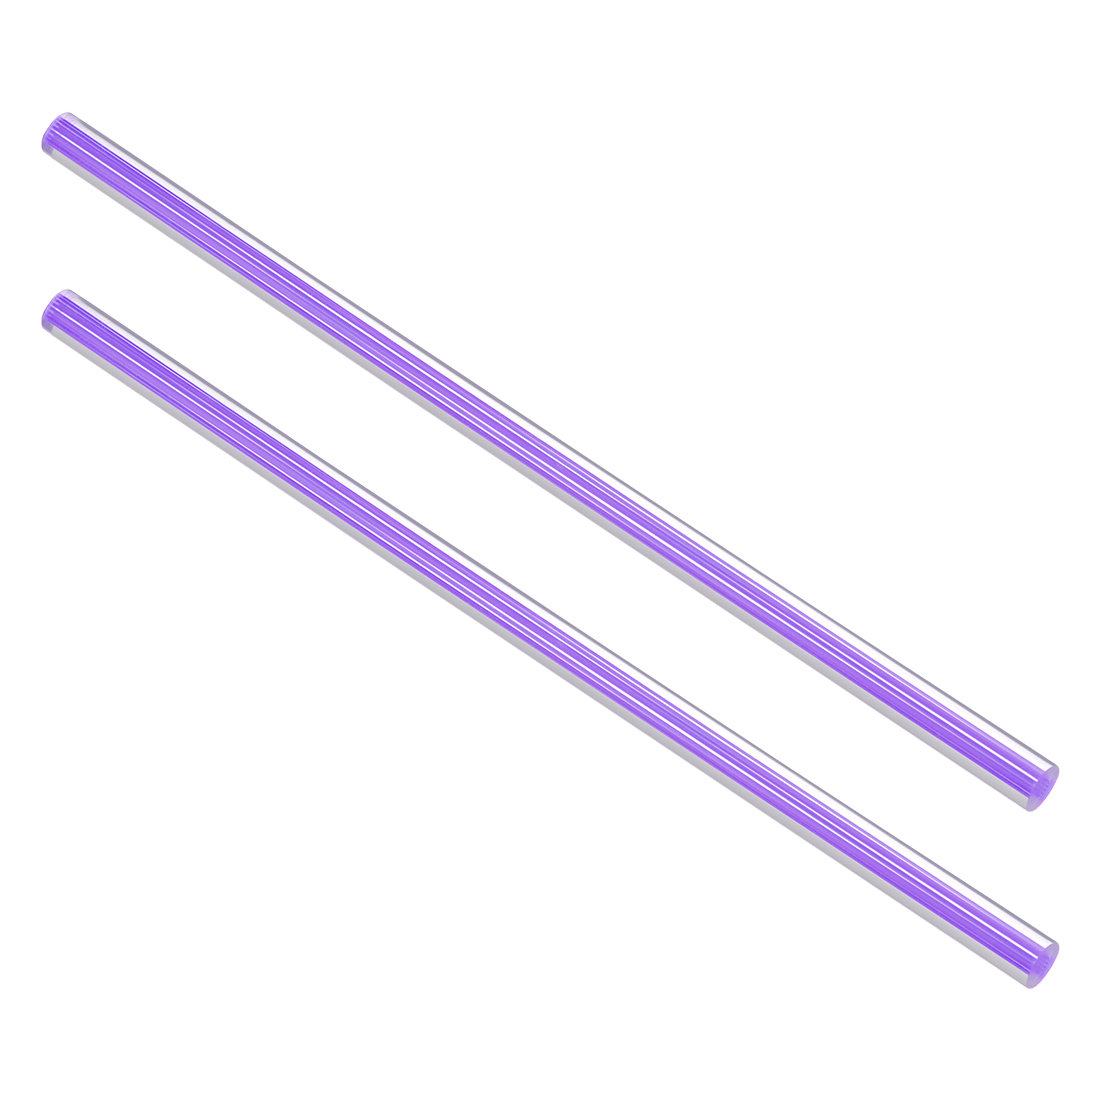 10mmx250mm Straight Light Purple Line Solid Acrylic Round Rods PMMA Bars 2pcs